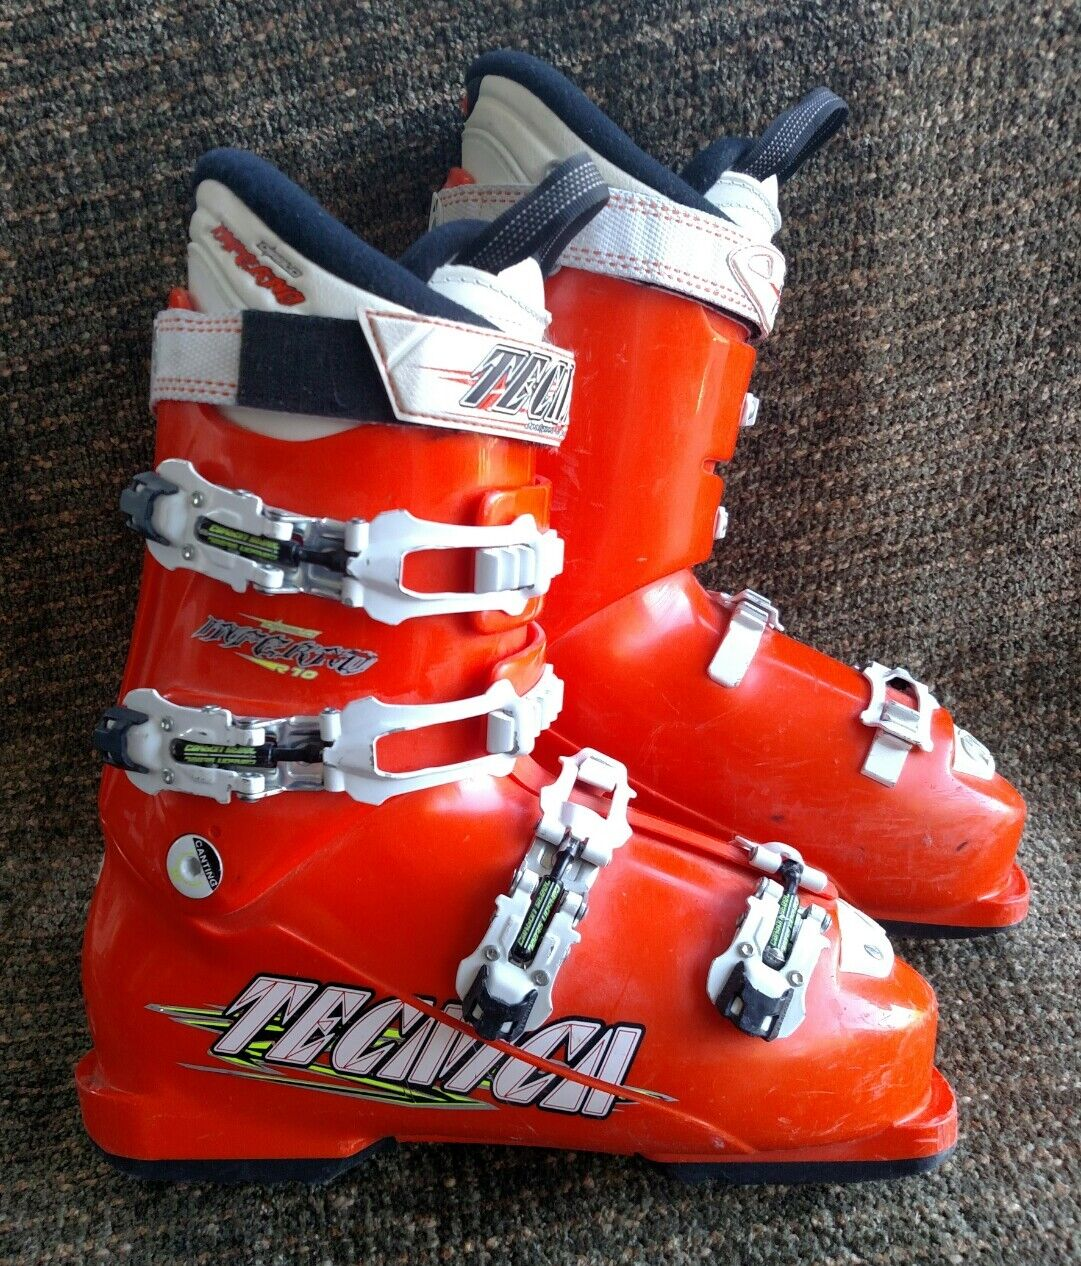 Tecnica Diablo Inferno R10 orange 298mm  downhill race ski boots size 7.5 US mens  discount store